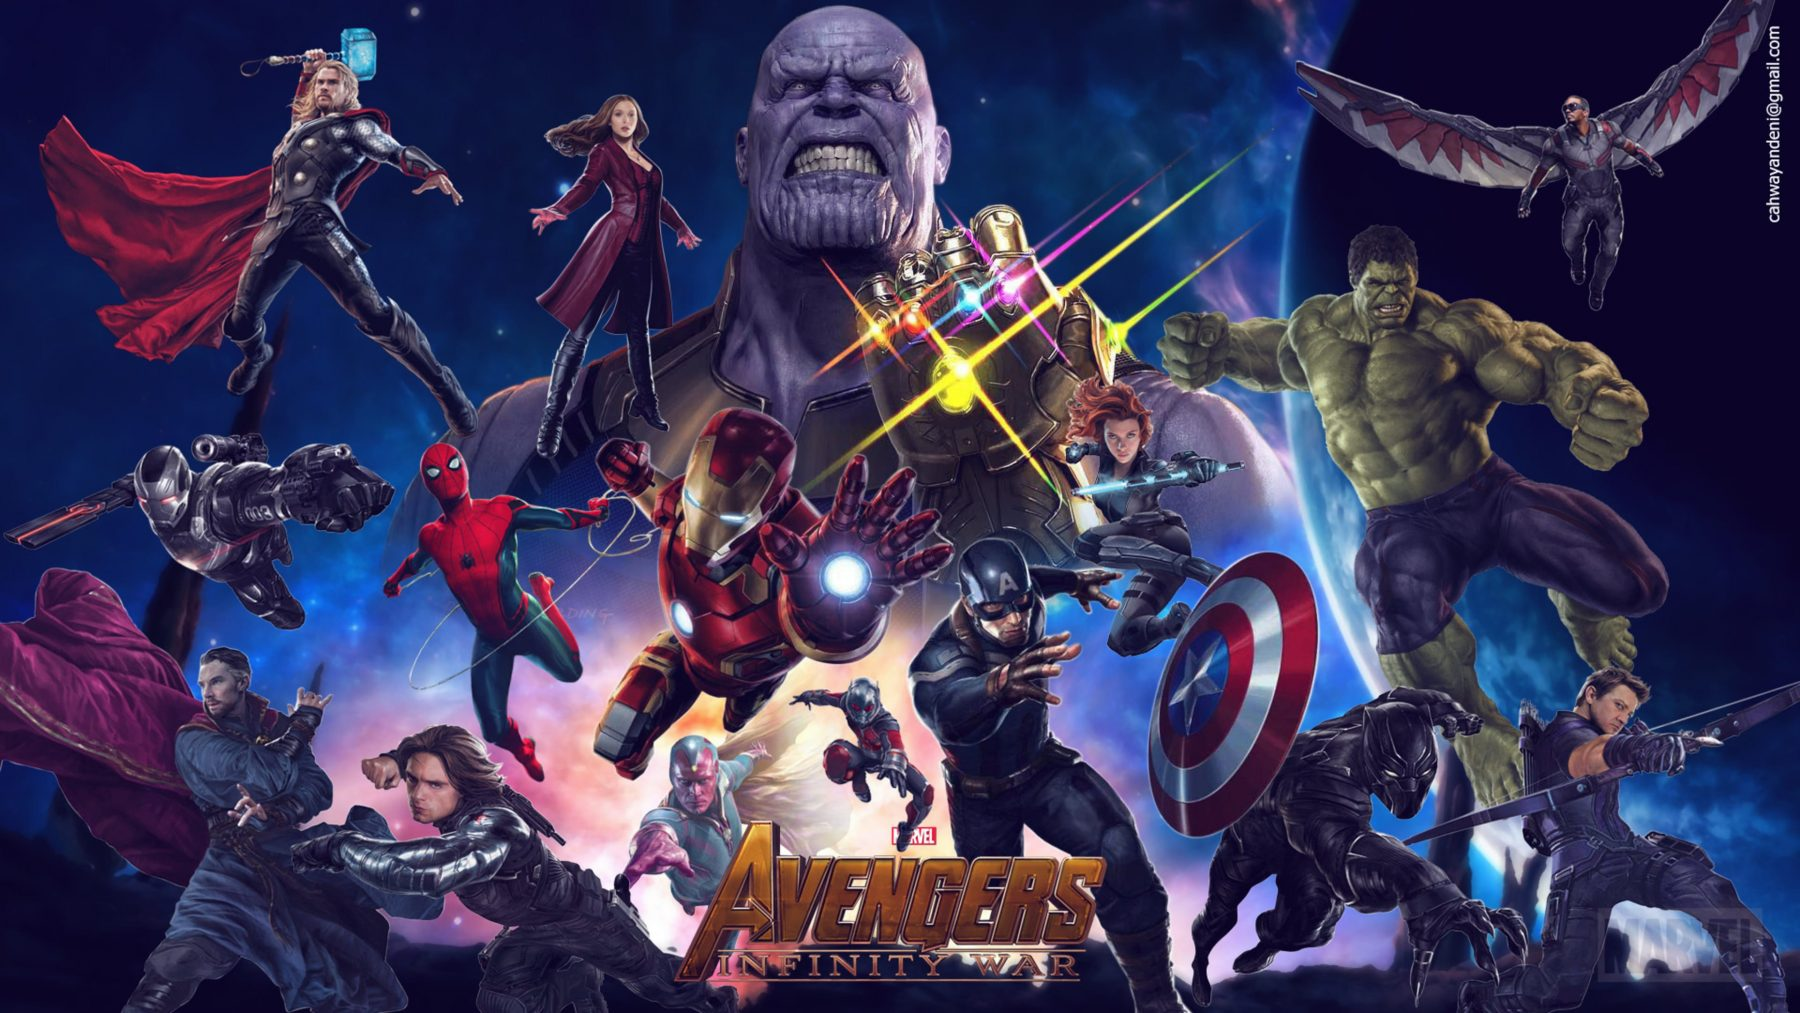 Avengers Infinity War Hd Wallpapers 7wallpapersnet